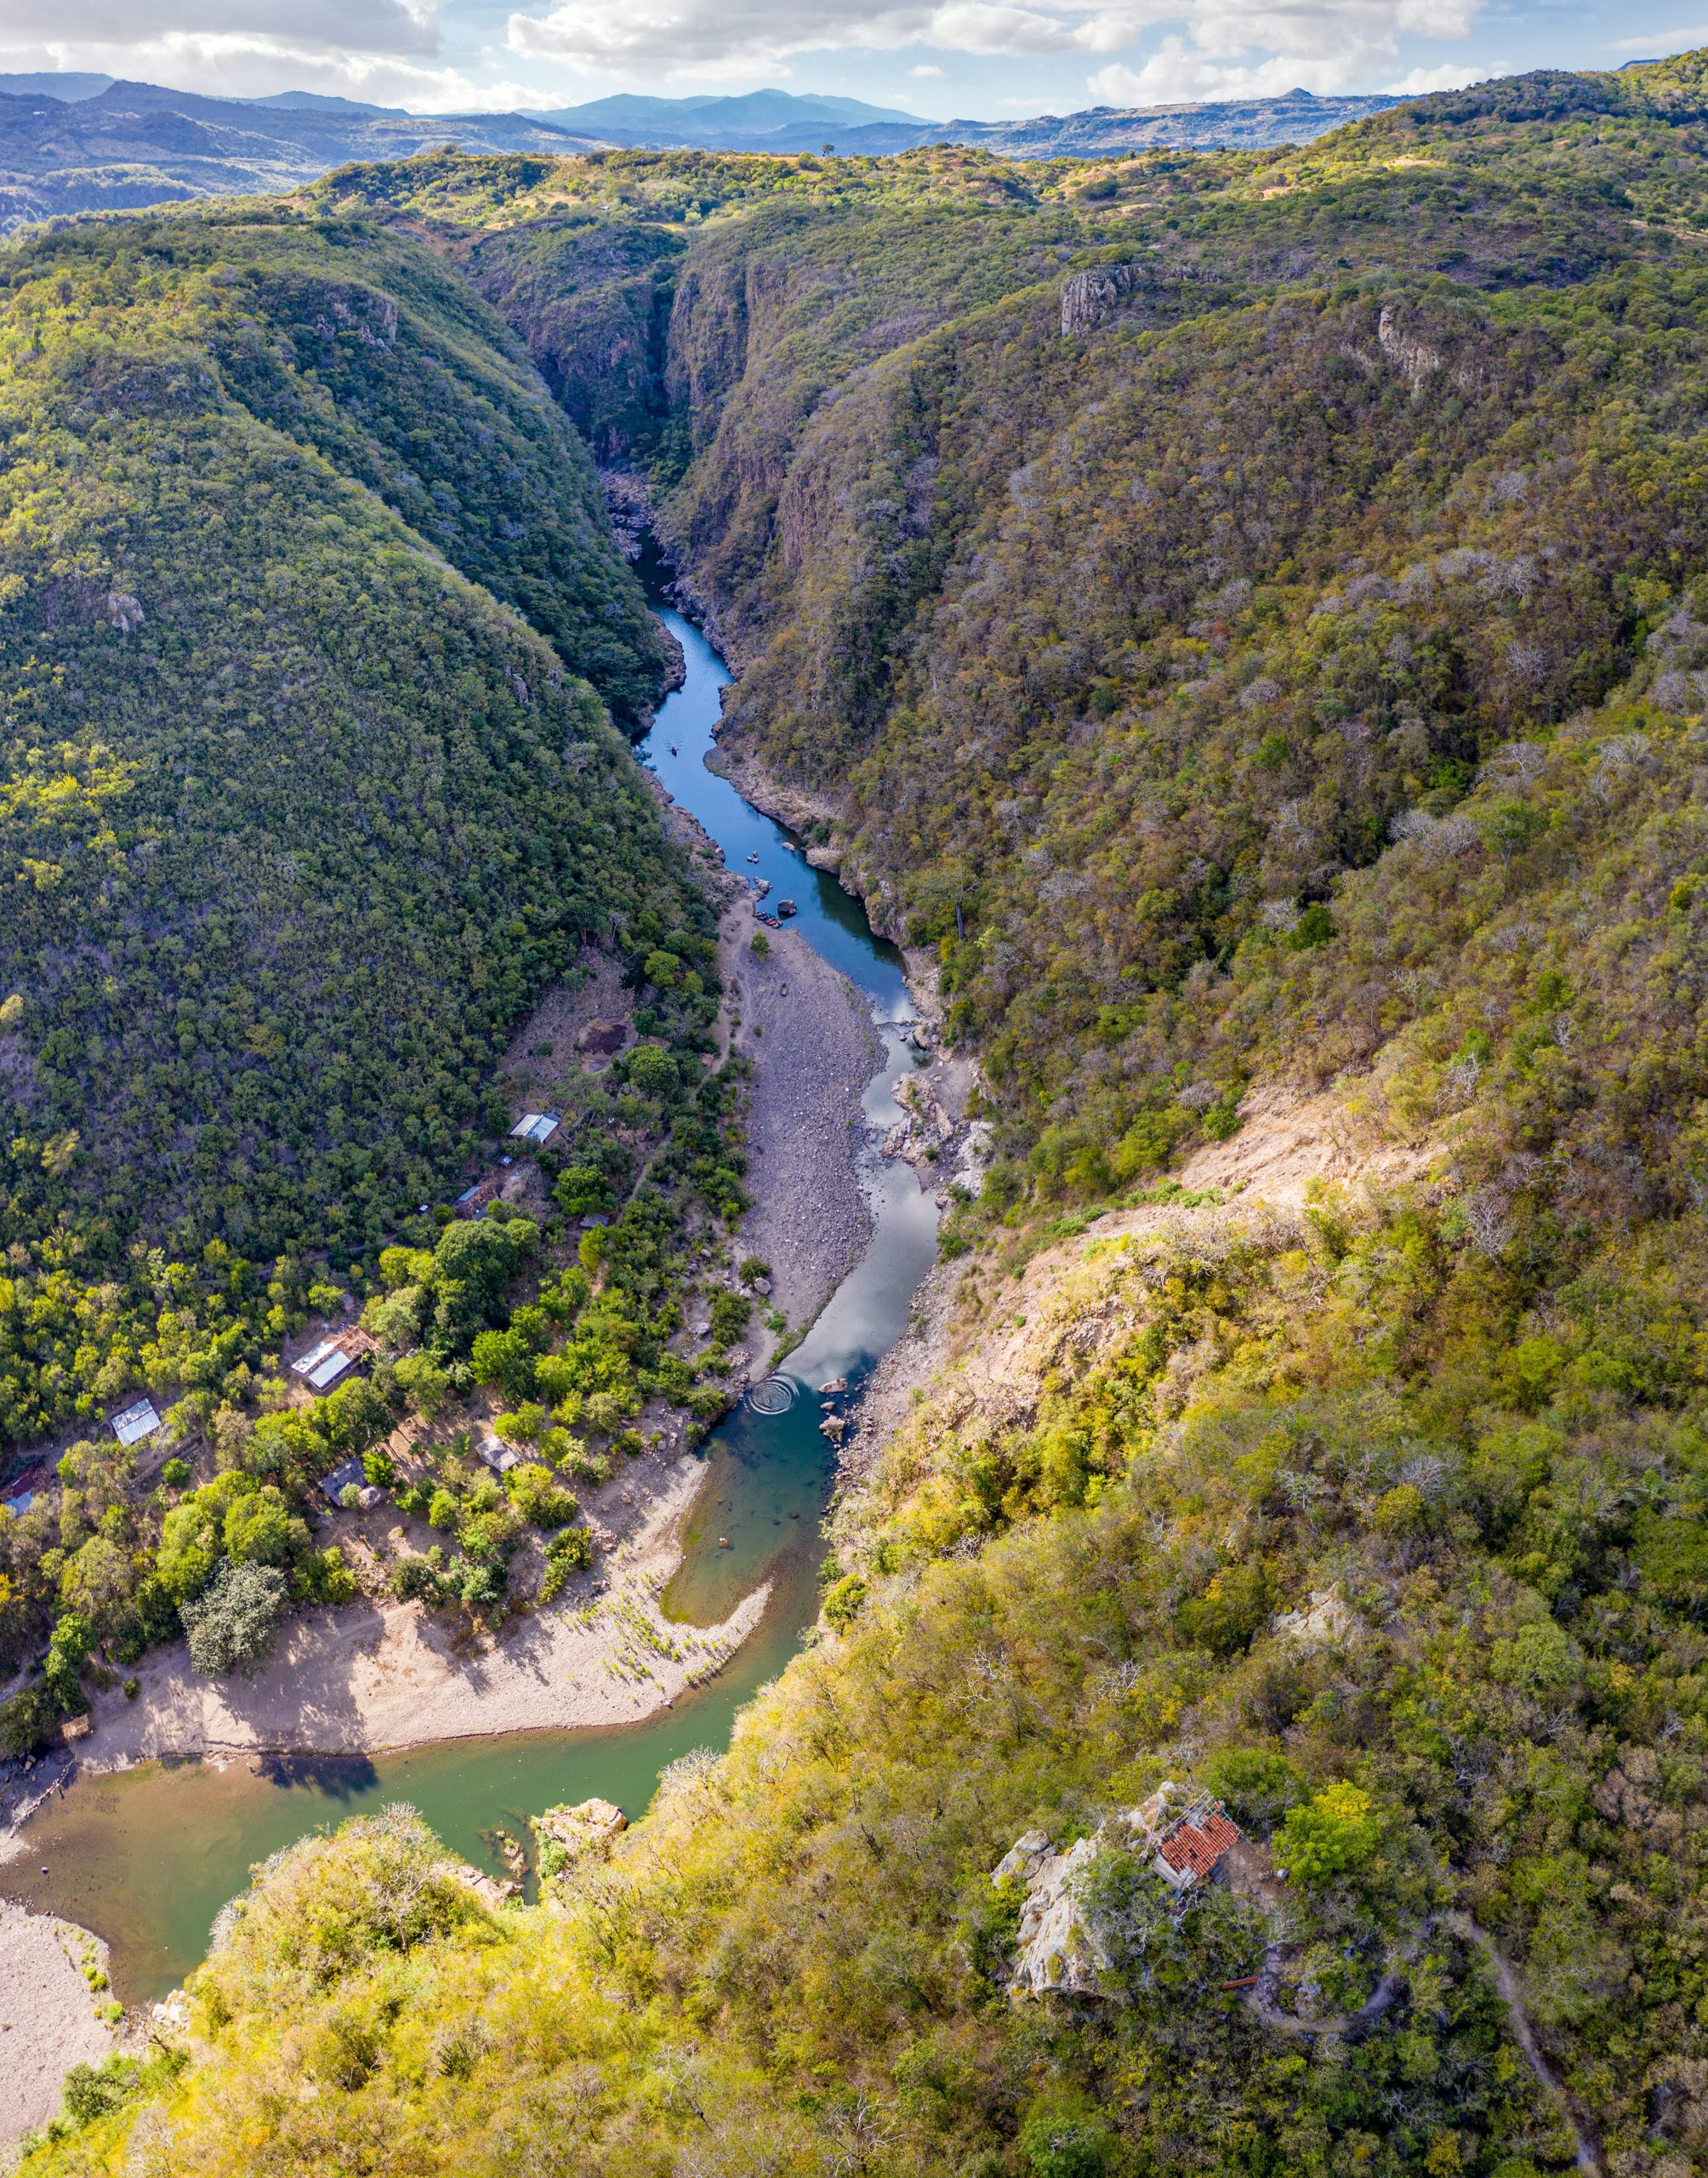 The deep gorge of Somoto Canyon is